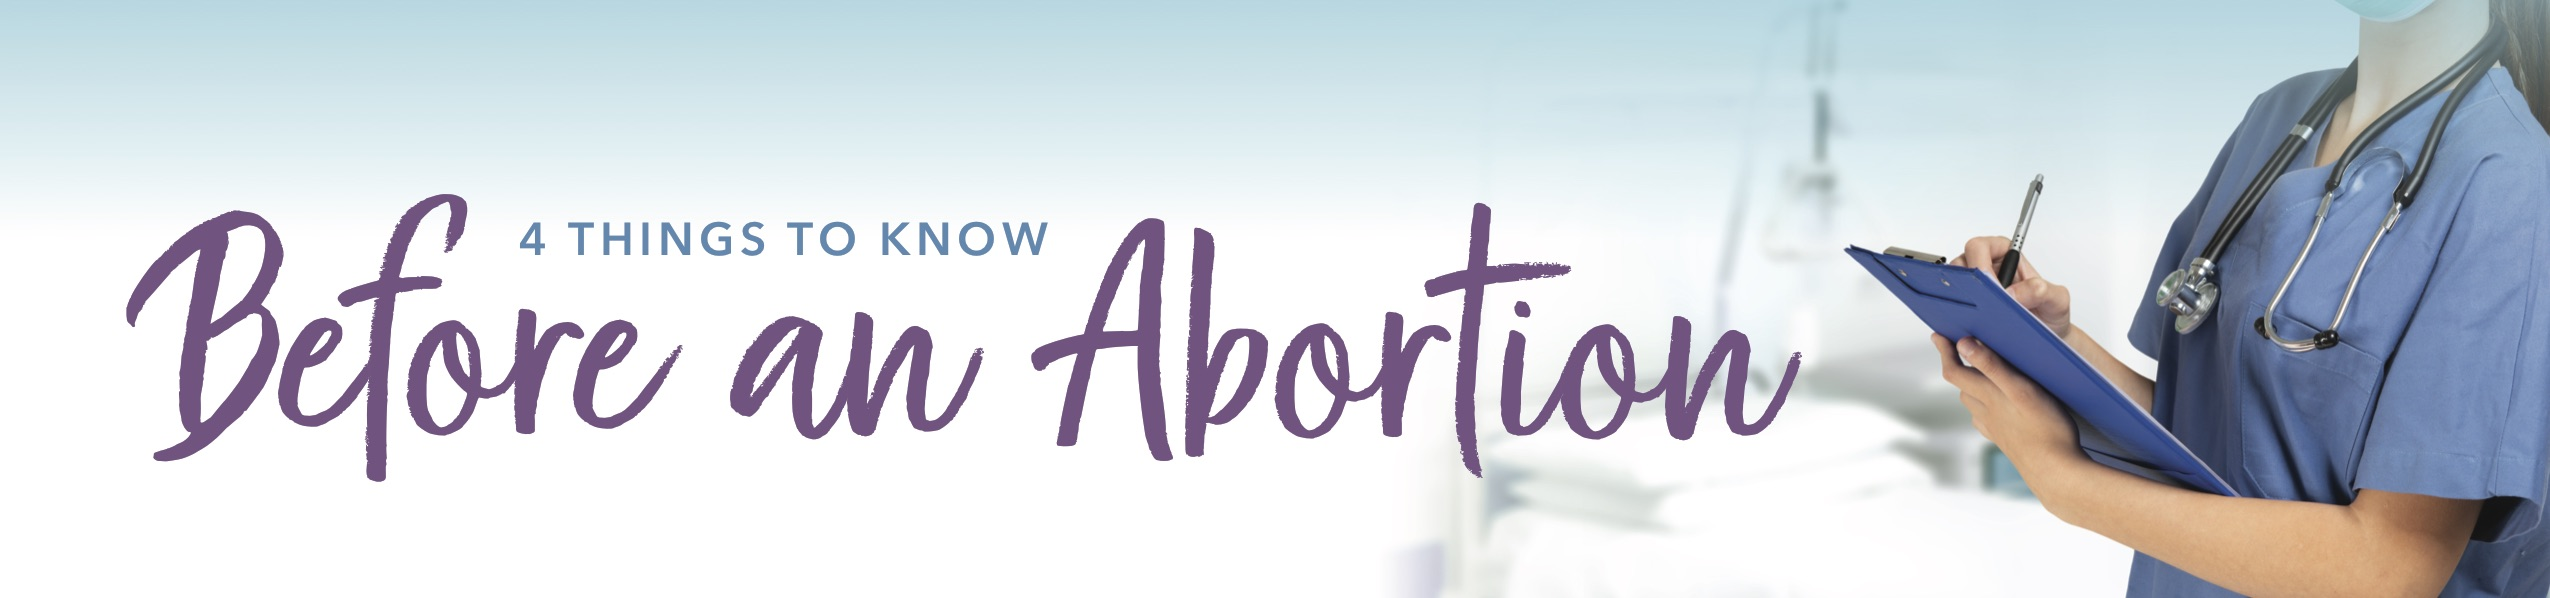 woman looking at things to know before an abortion